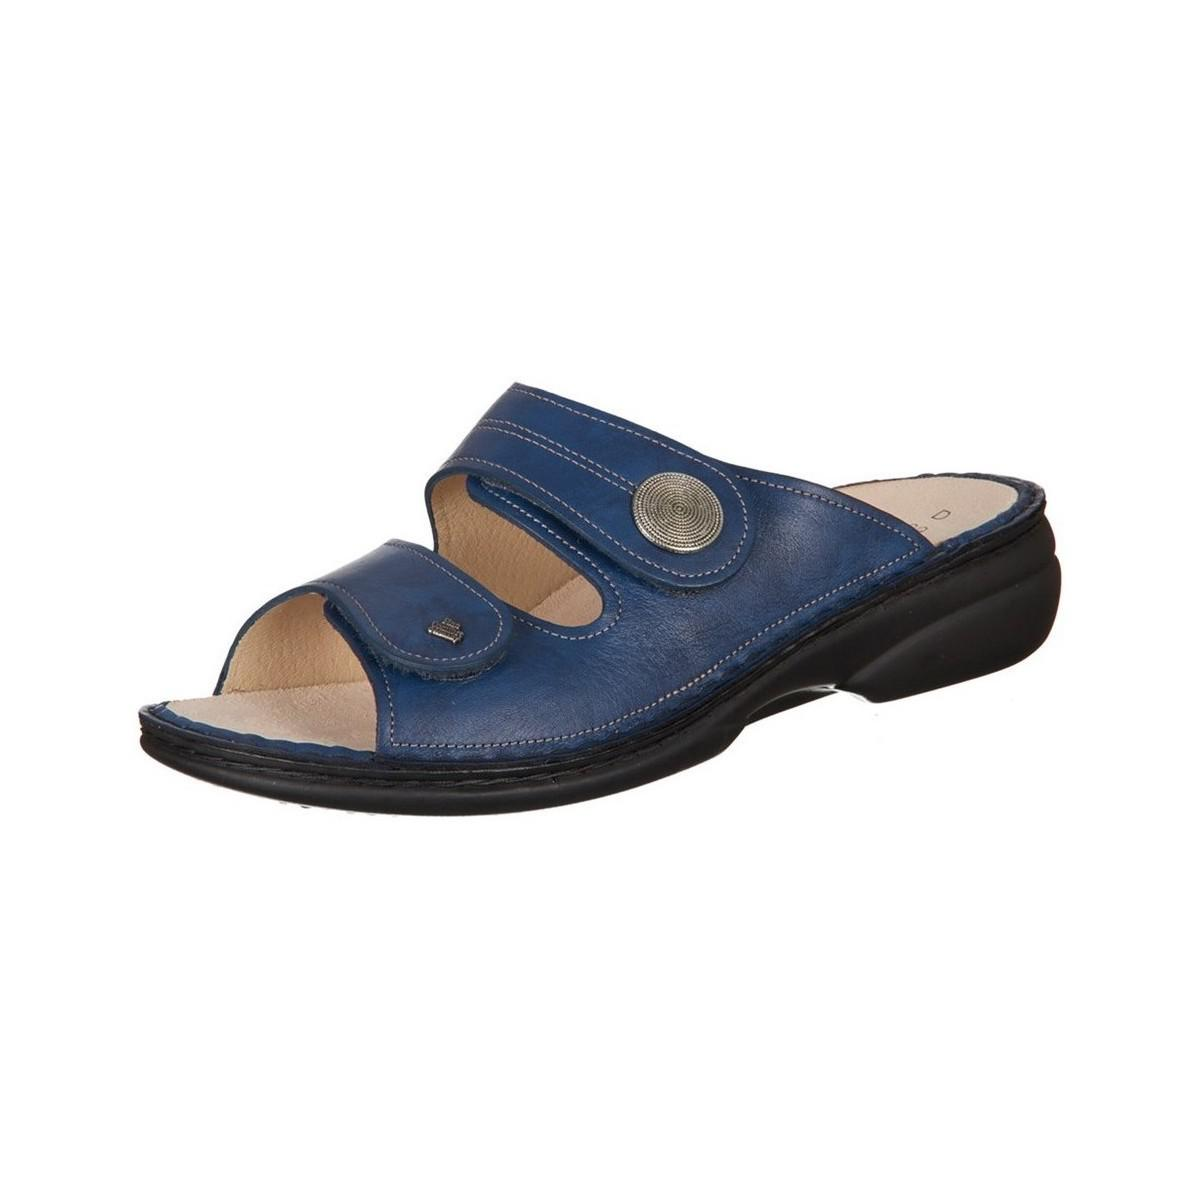 Outlet 2018 New Manchester Online Finn Menorcasoft Nappaseda women's Mules / Casual Shoes in Buy Newest The Cheapest Cheap Online Discount 100% Original rMDvFl